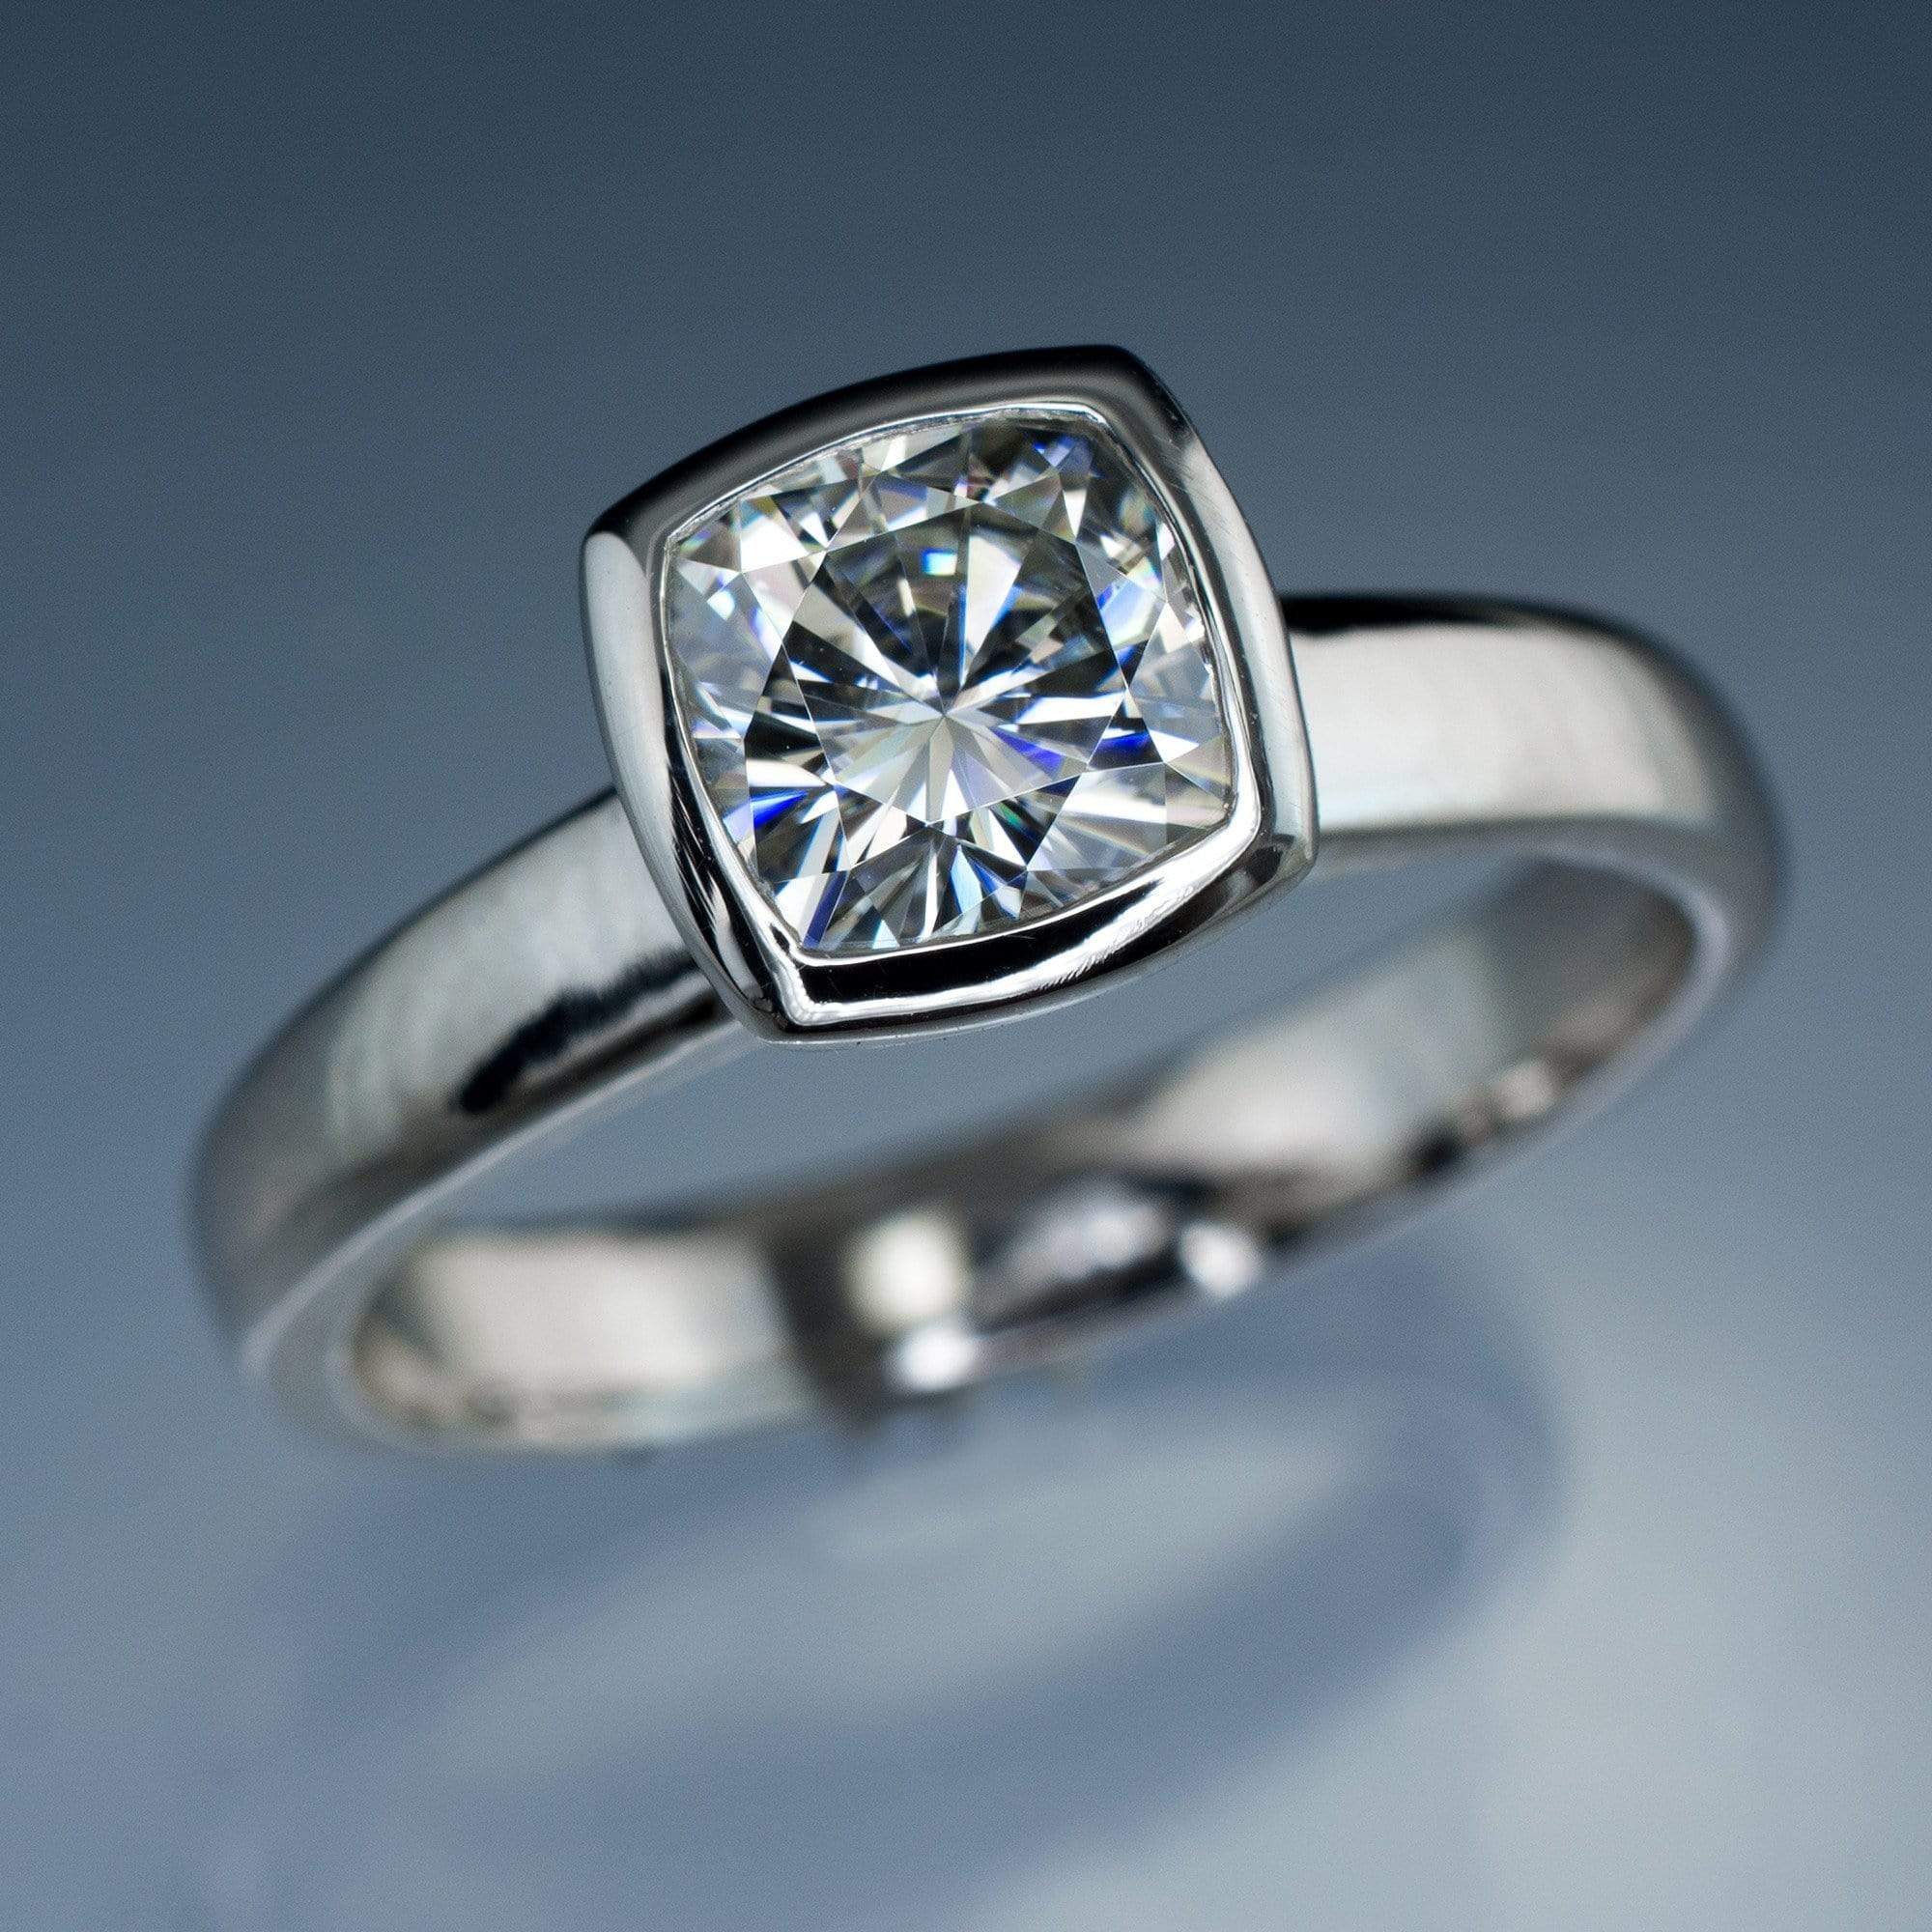 Cushion Moissanite Bezel Set Solitaire Engagement Ring